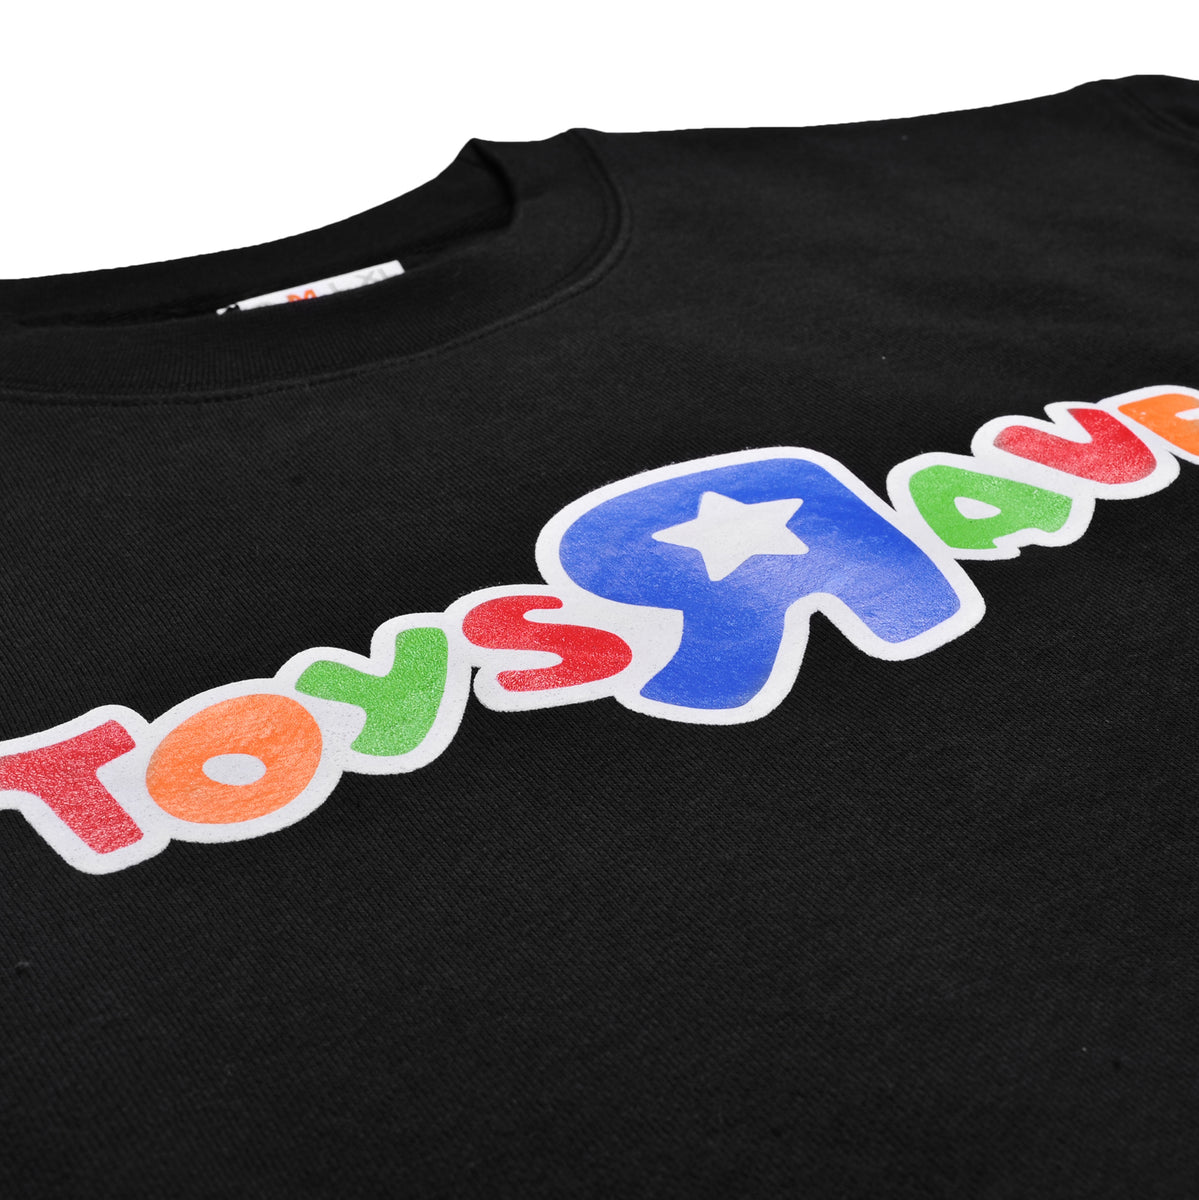 TOYS RAVE black crewneck - RAVE skateboards